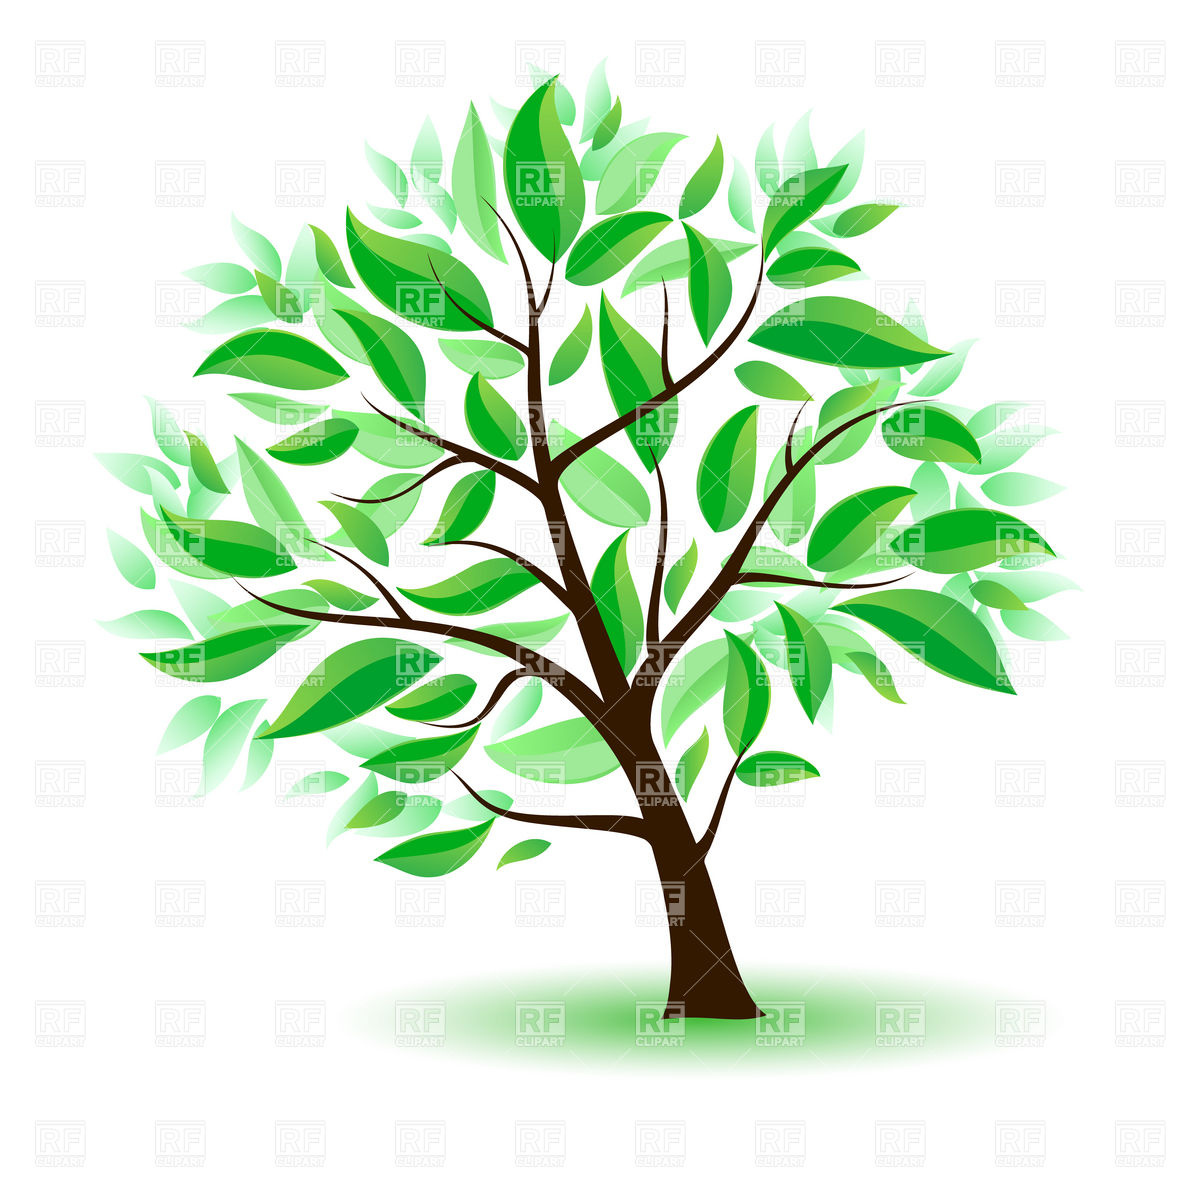 1200x1200 Outstanding Cartoon Pictures Of A Tree With Gr